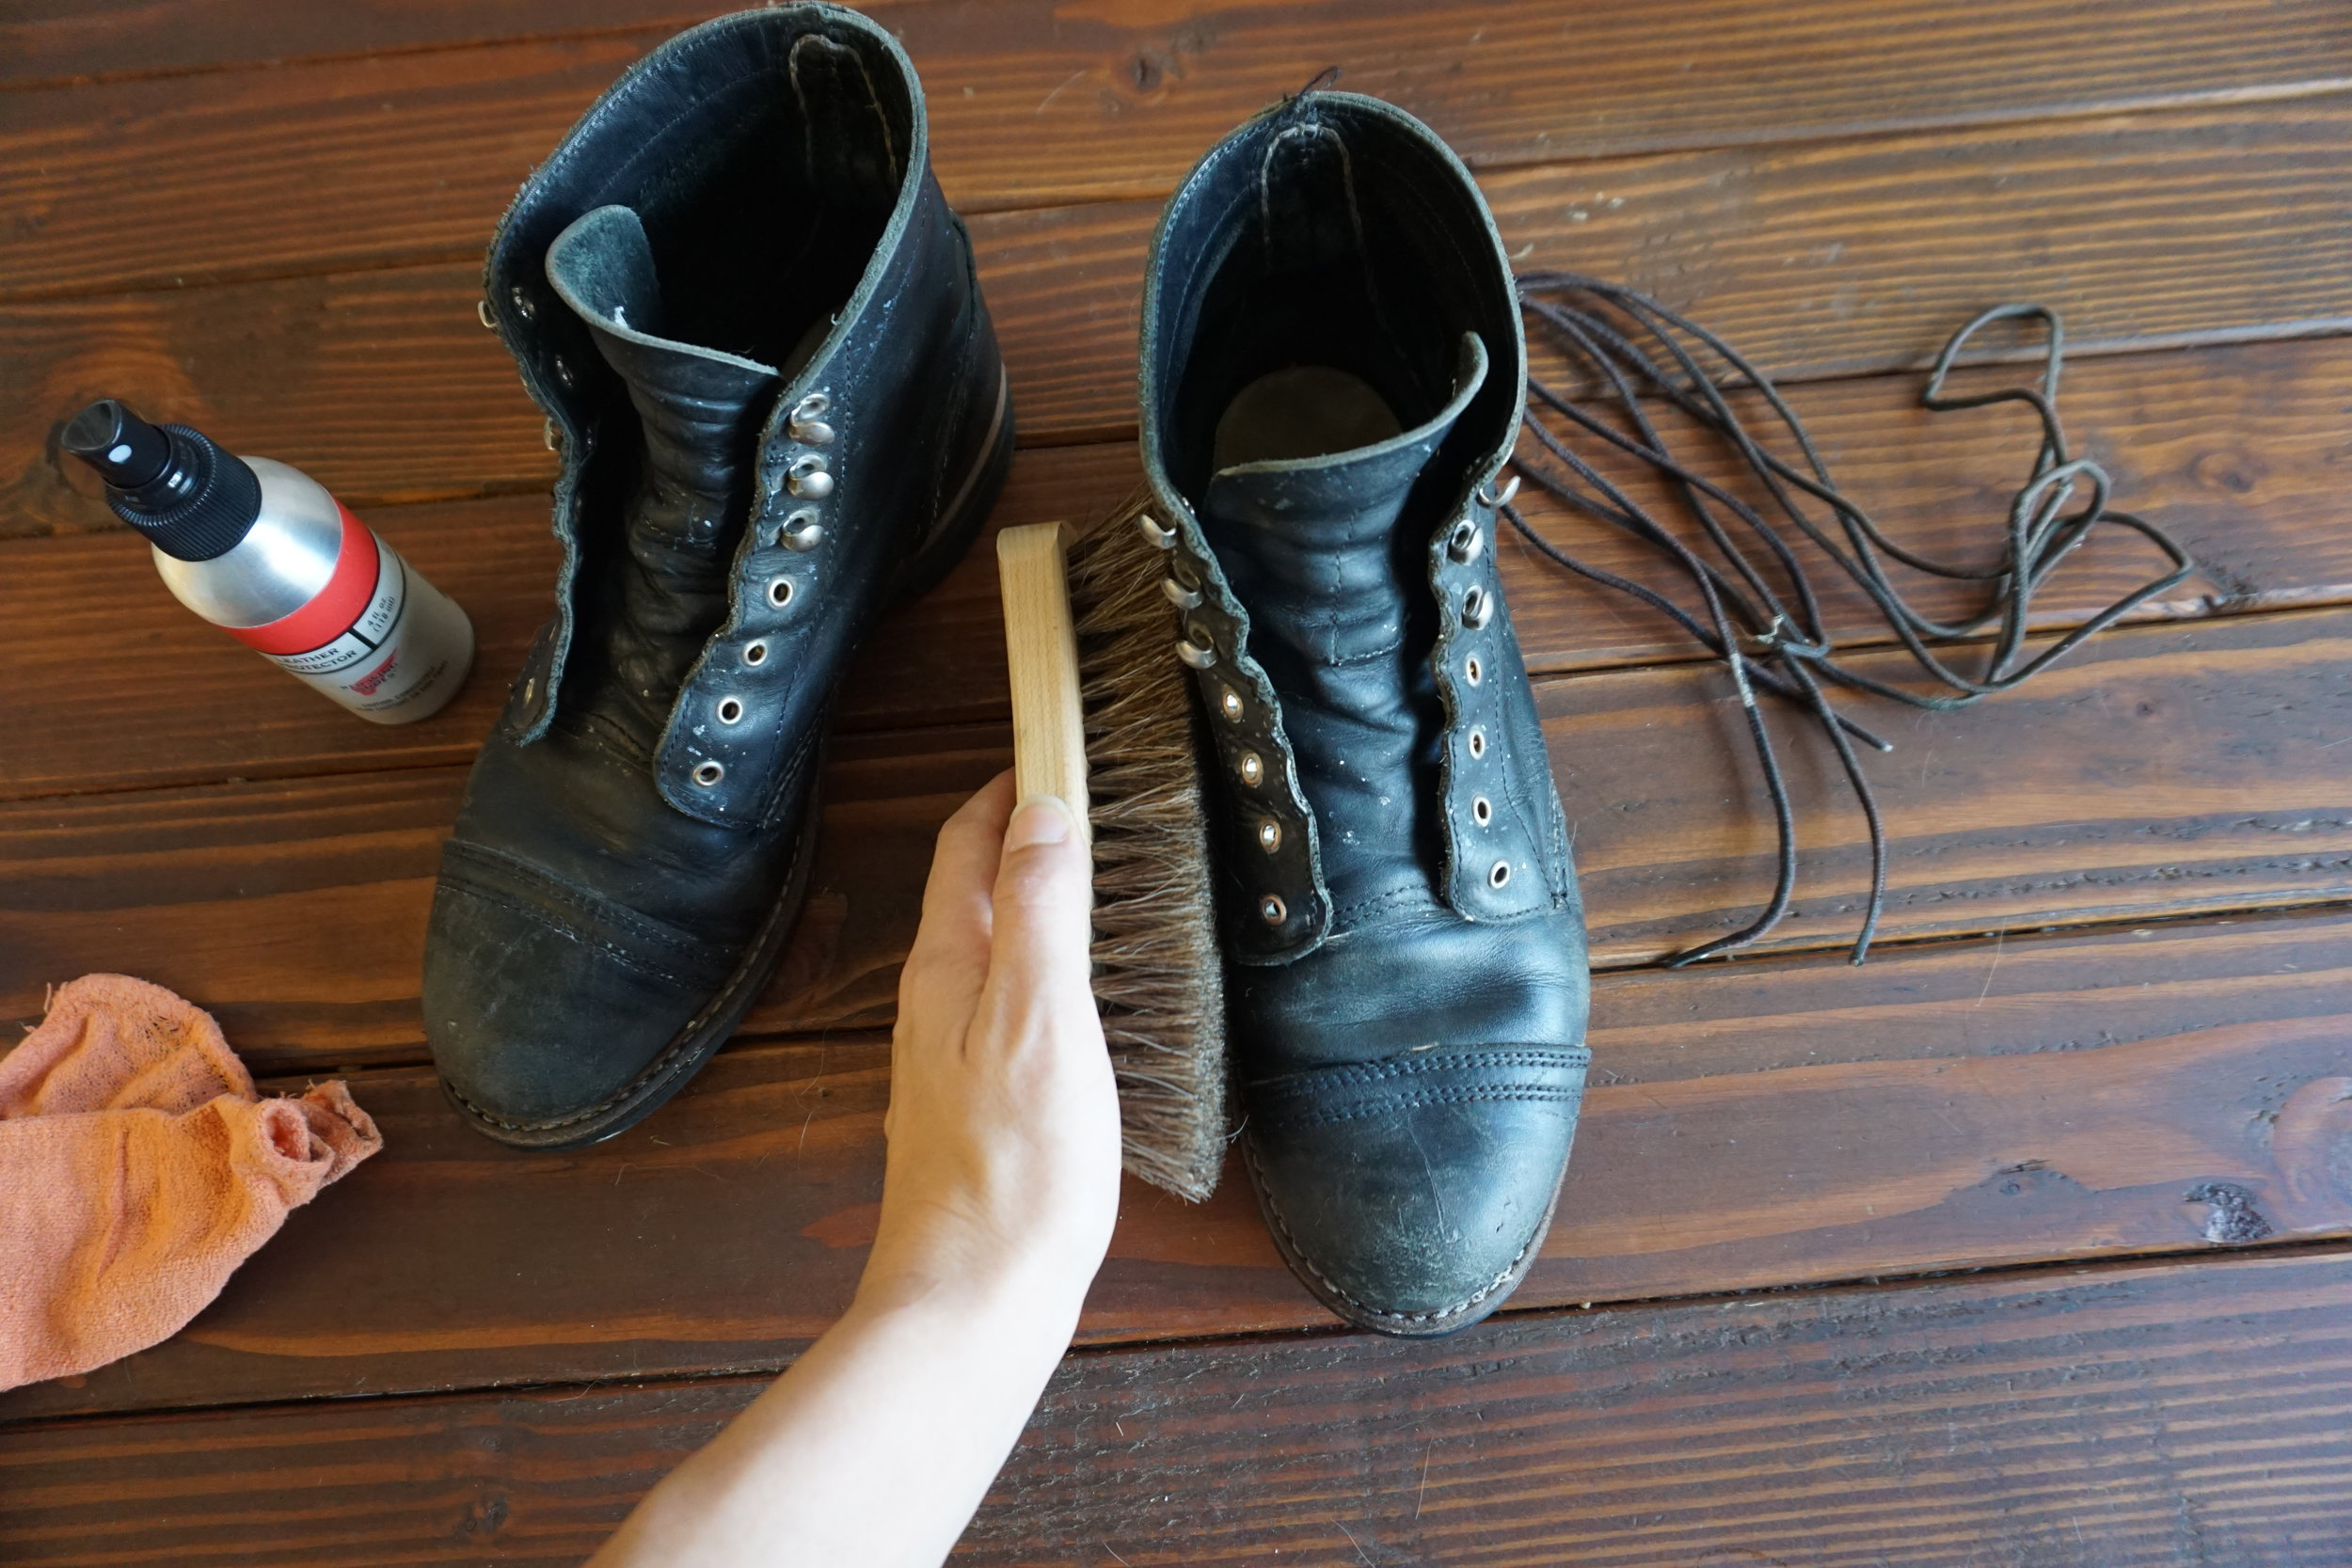 once the boot cream is dry, buff it off with the brush